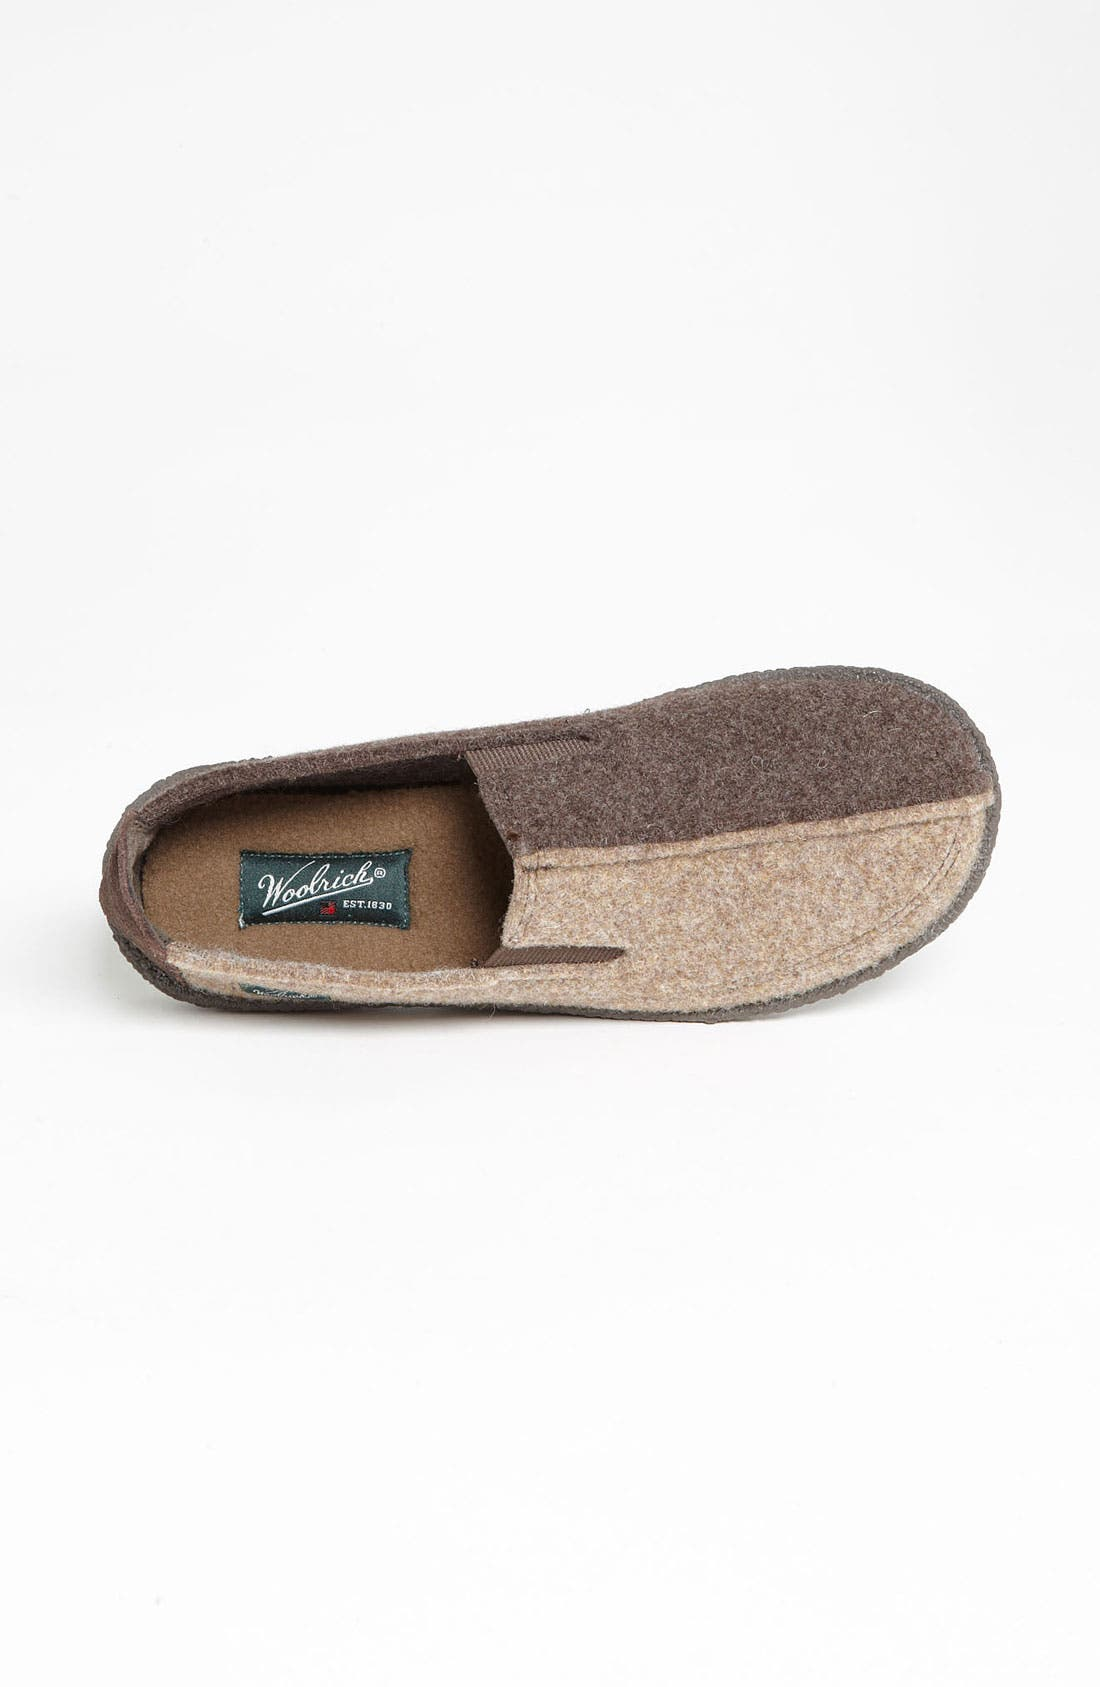 Alternate Image 3  - Woolrich 'Plumtree' Slipper